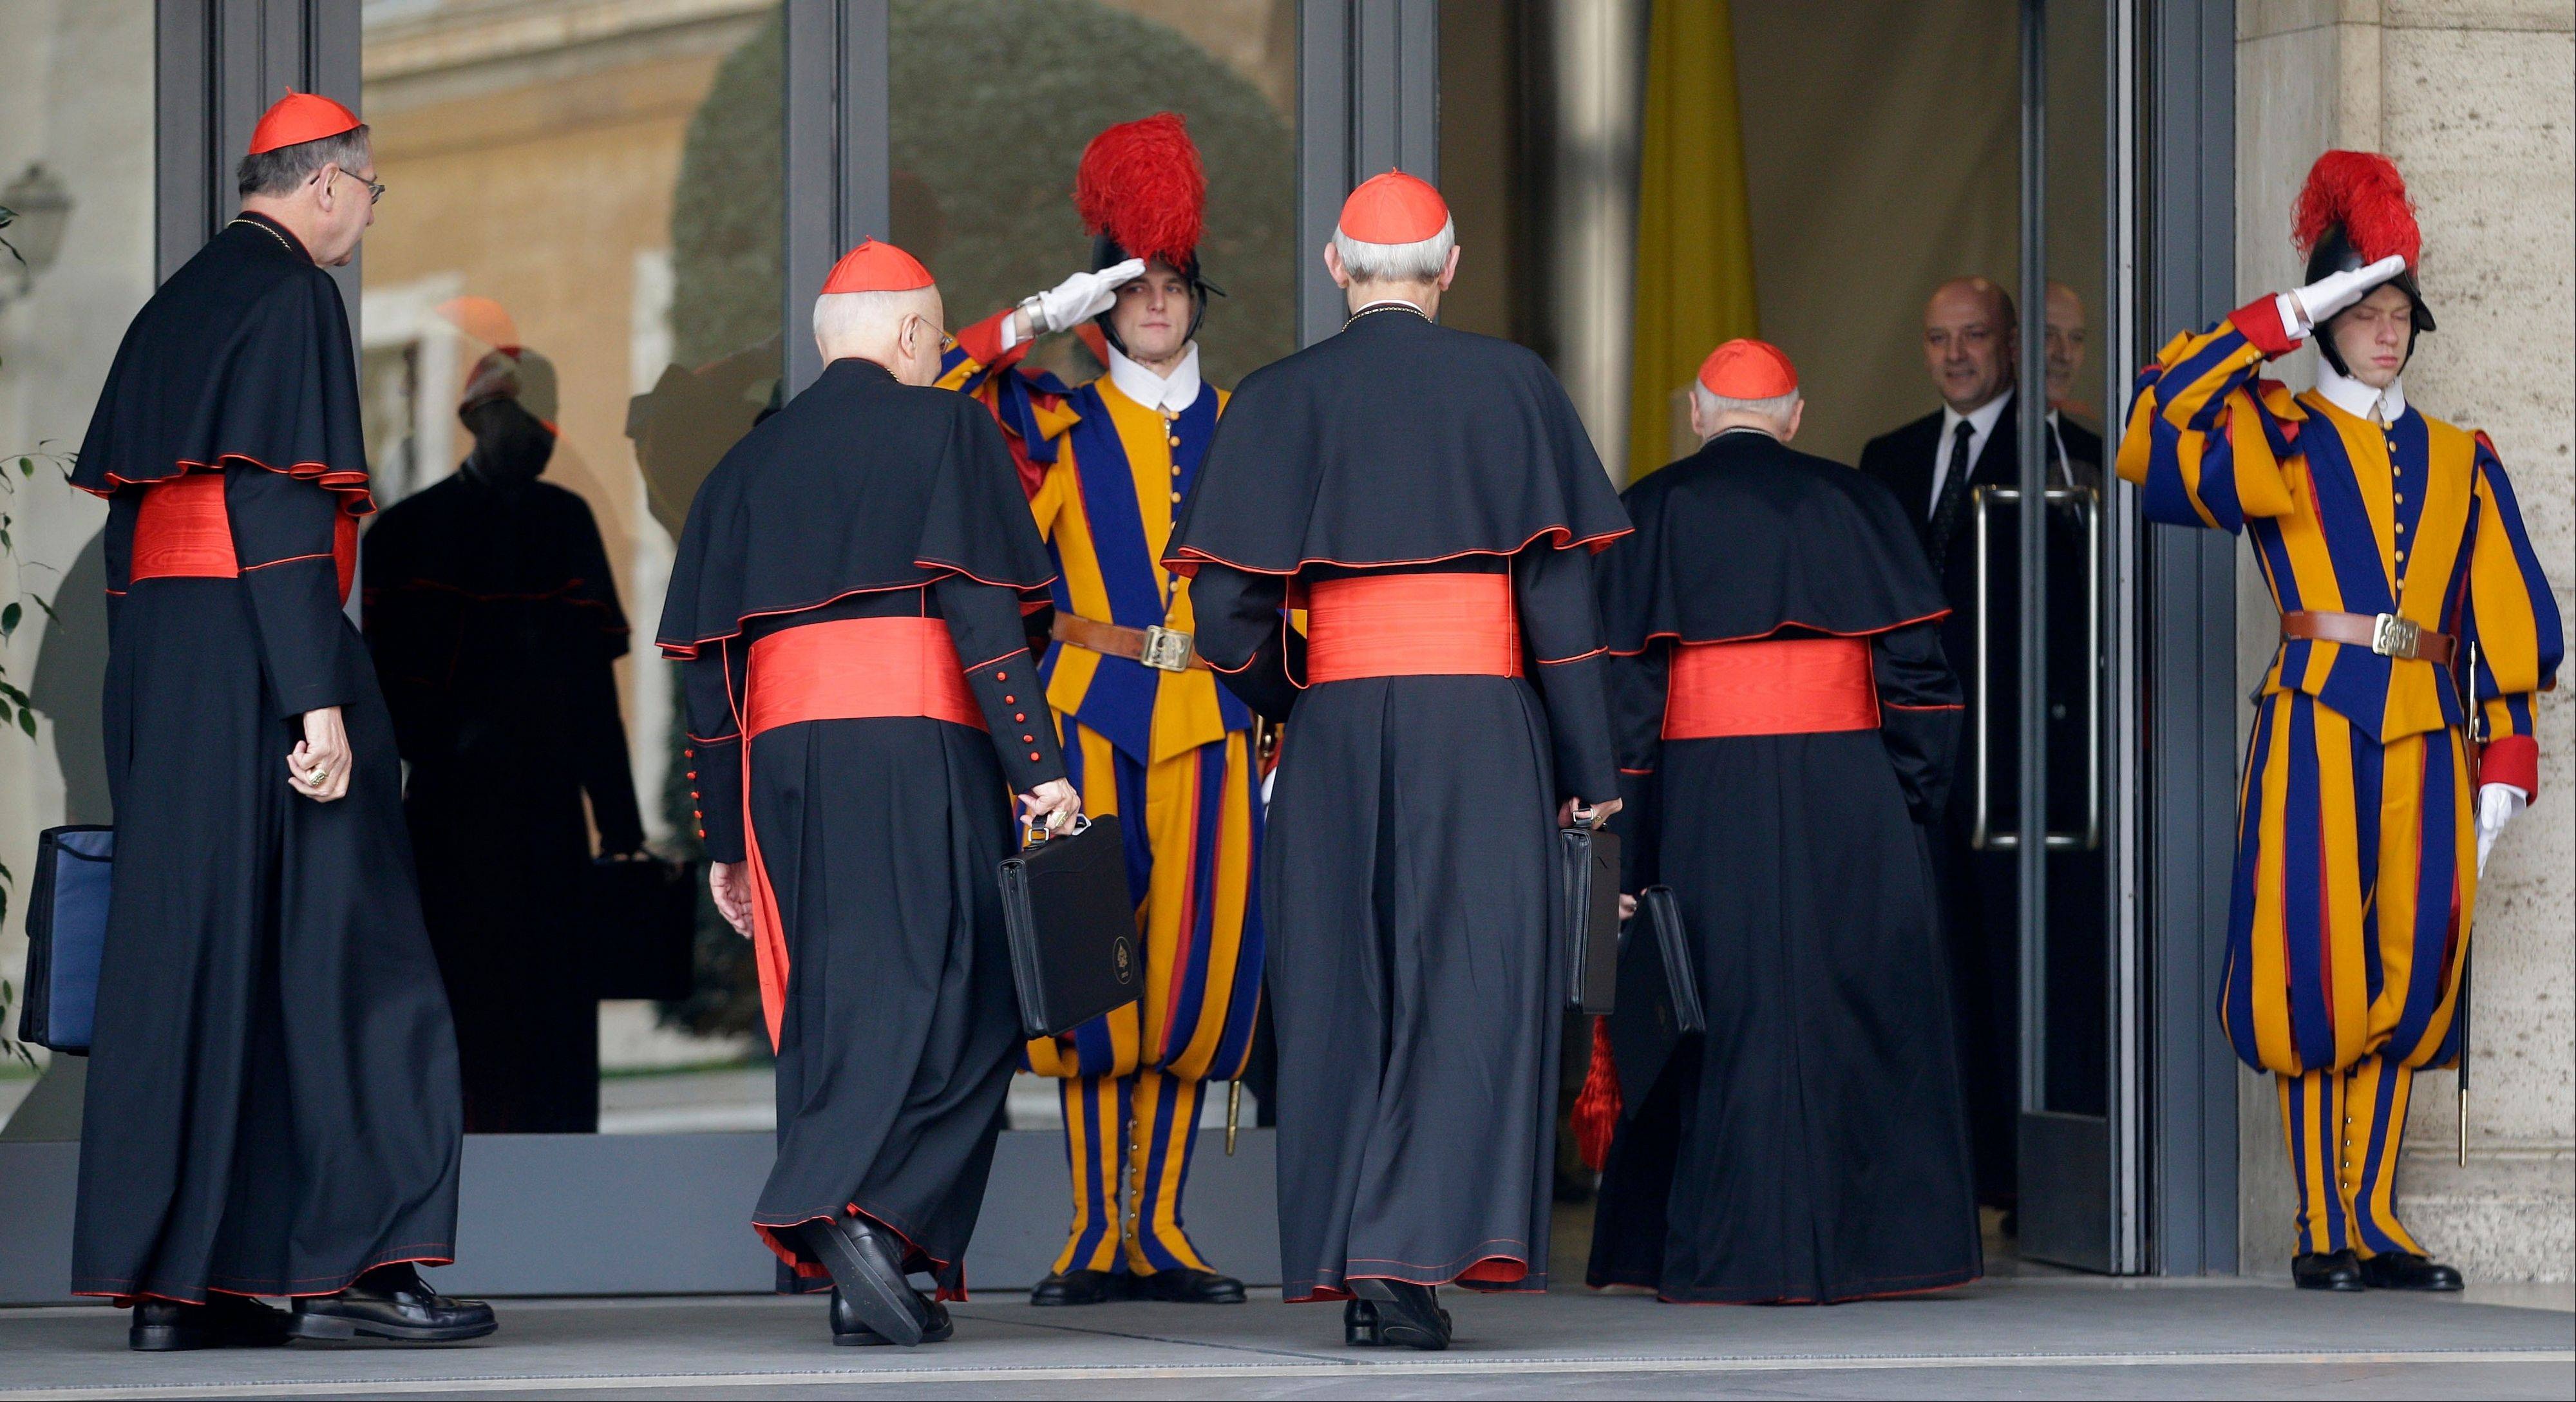 Associated PressU.S. cardinals arrive for a meeting at the Vatican Tuesday for a second day of pre-conclave meetings. With a handful of cardinals s